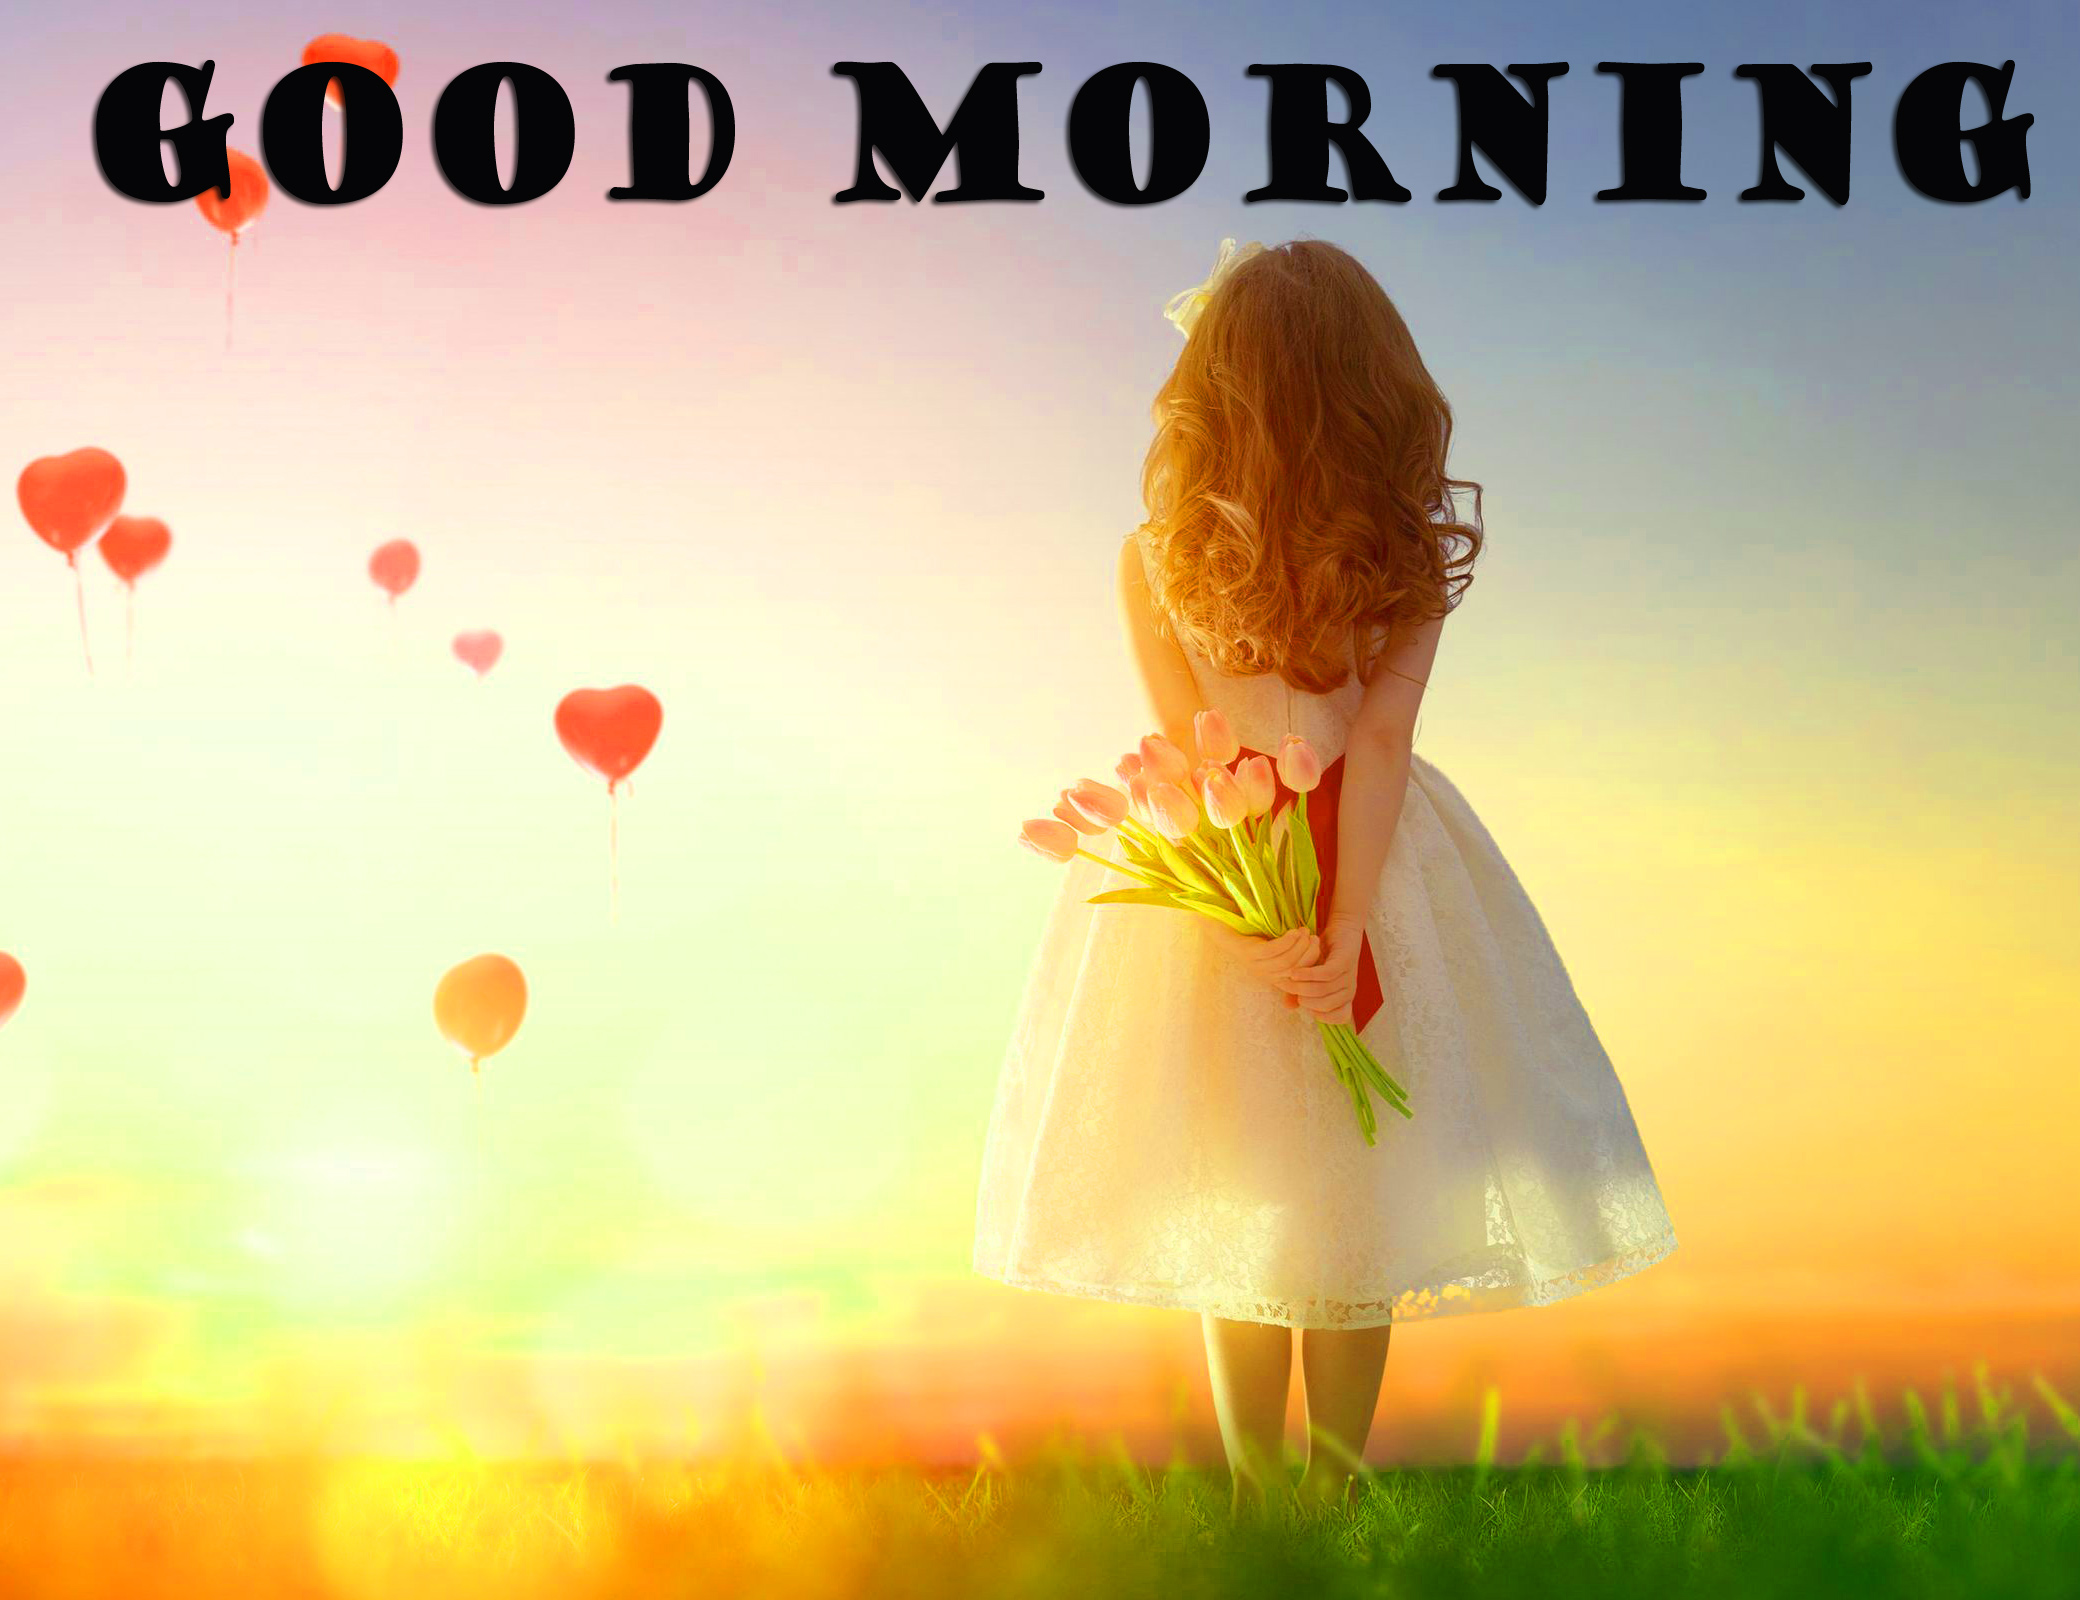 Special Wonderful Good Morning Photo Wallpaper Pictures Free HD